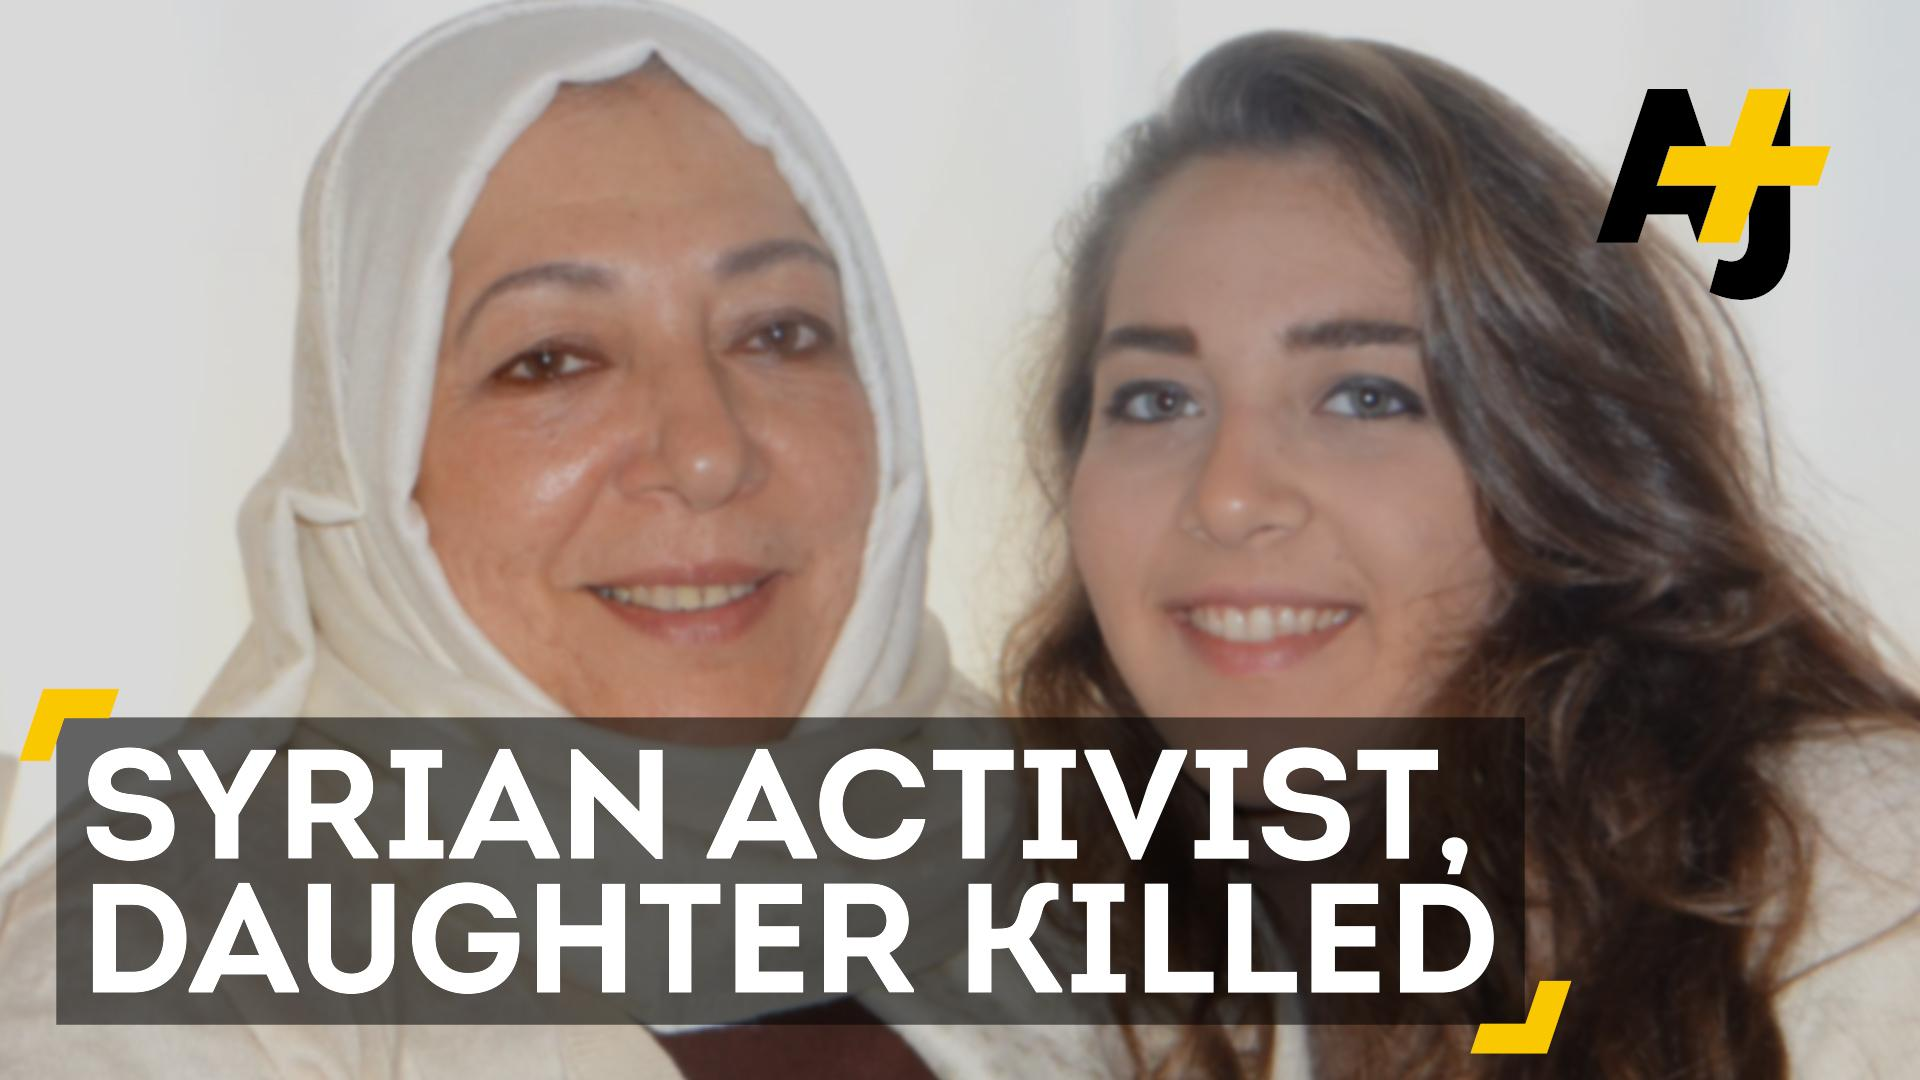 RT @ajplus: Syrian activist Orouba Barakat and her daughter Halla were stabbed to death in their Istanbul apartment. https://t.co/8XZfve7jTp